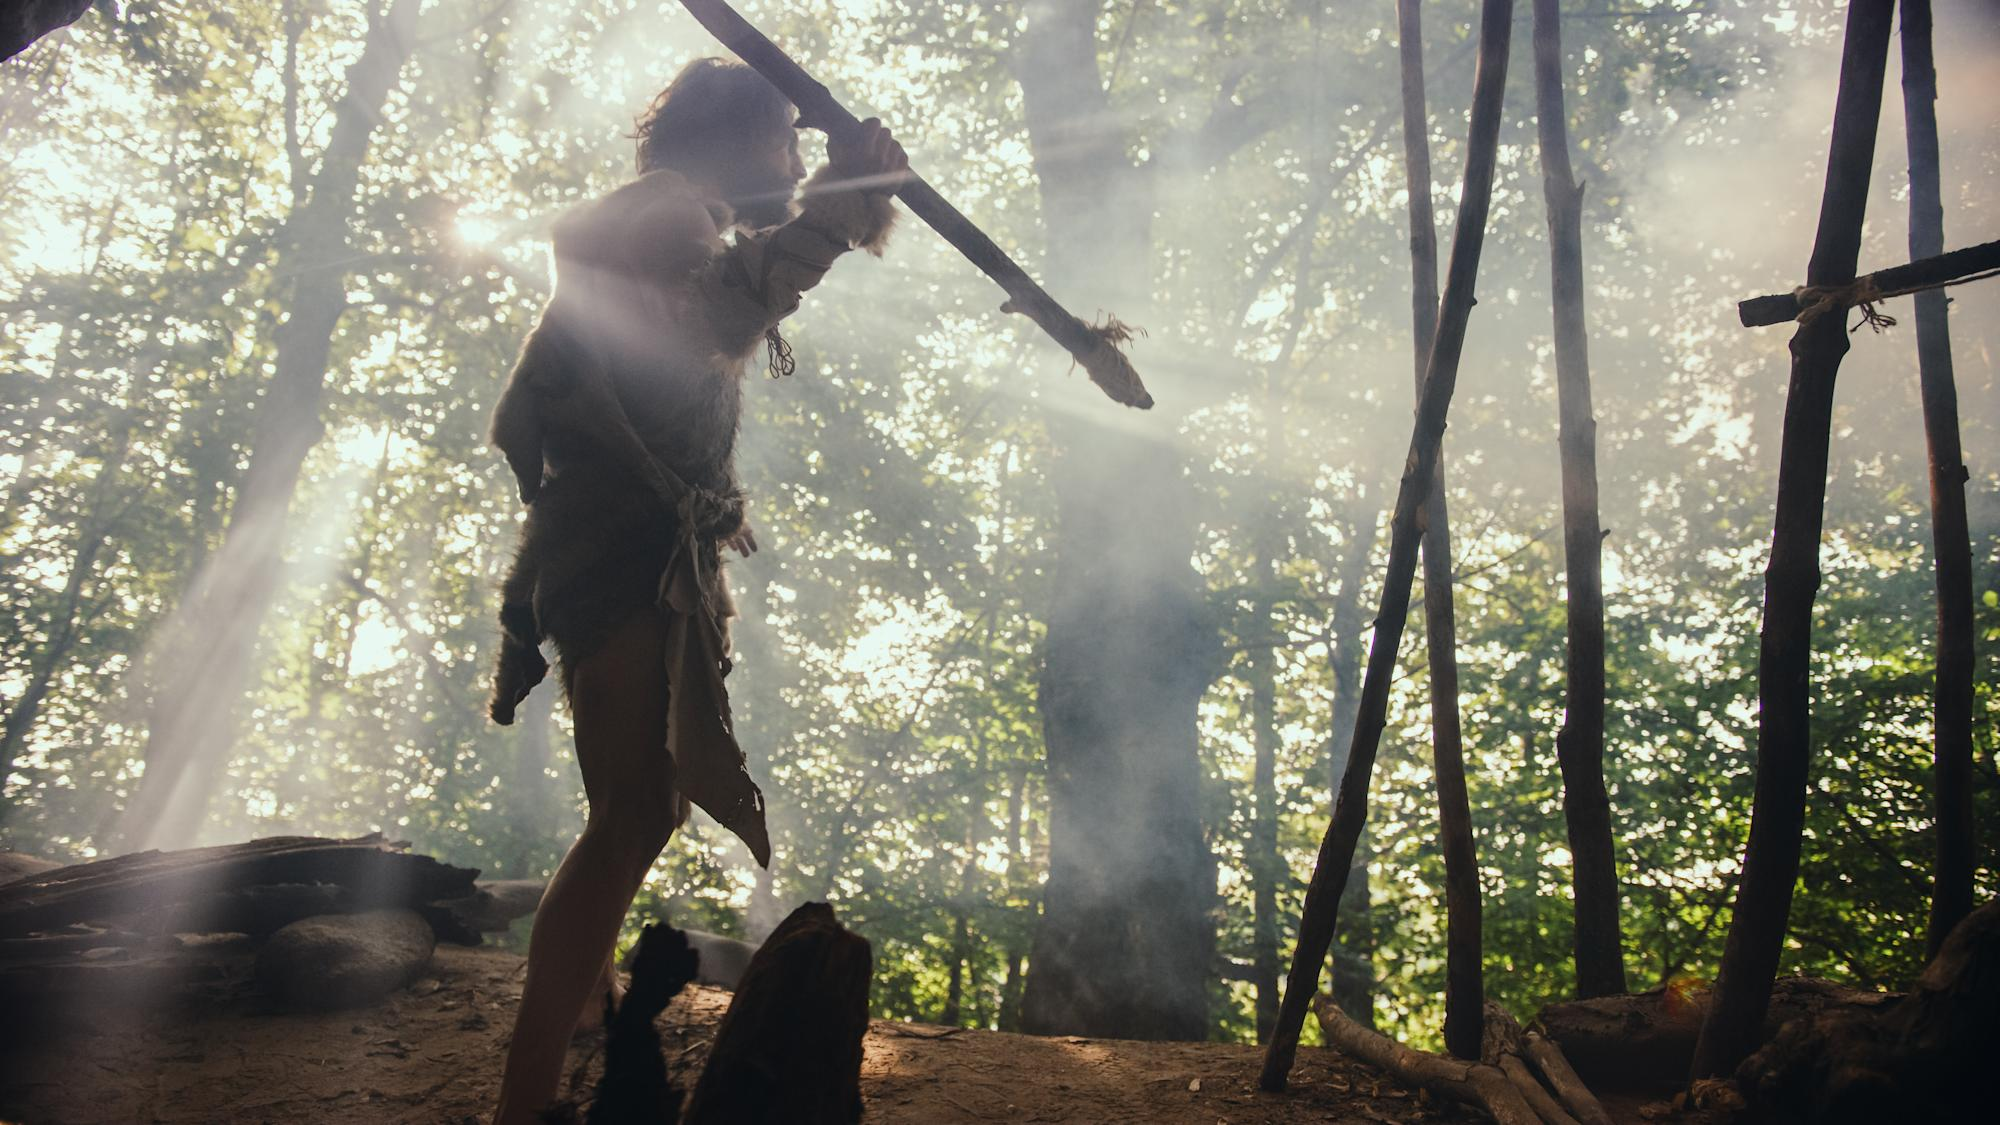 Neanderthals 'could speak, just like humans', study finds - Yahoo India News